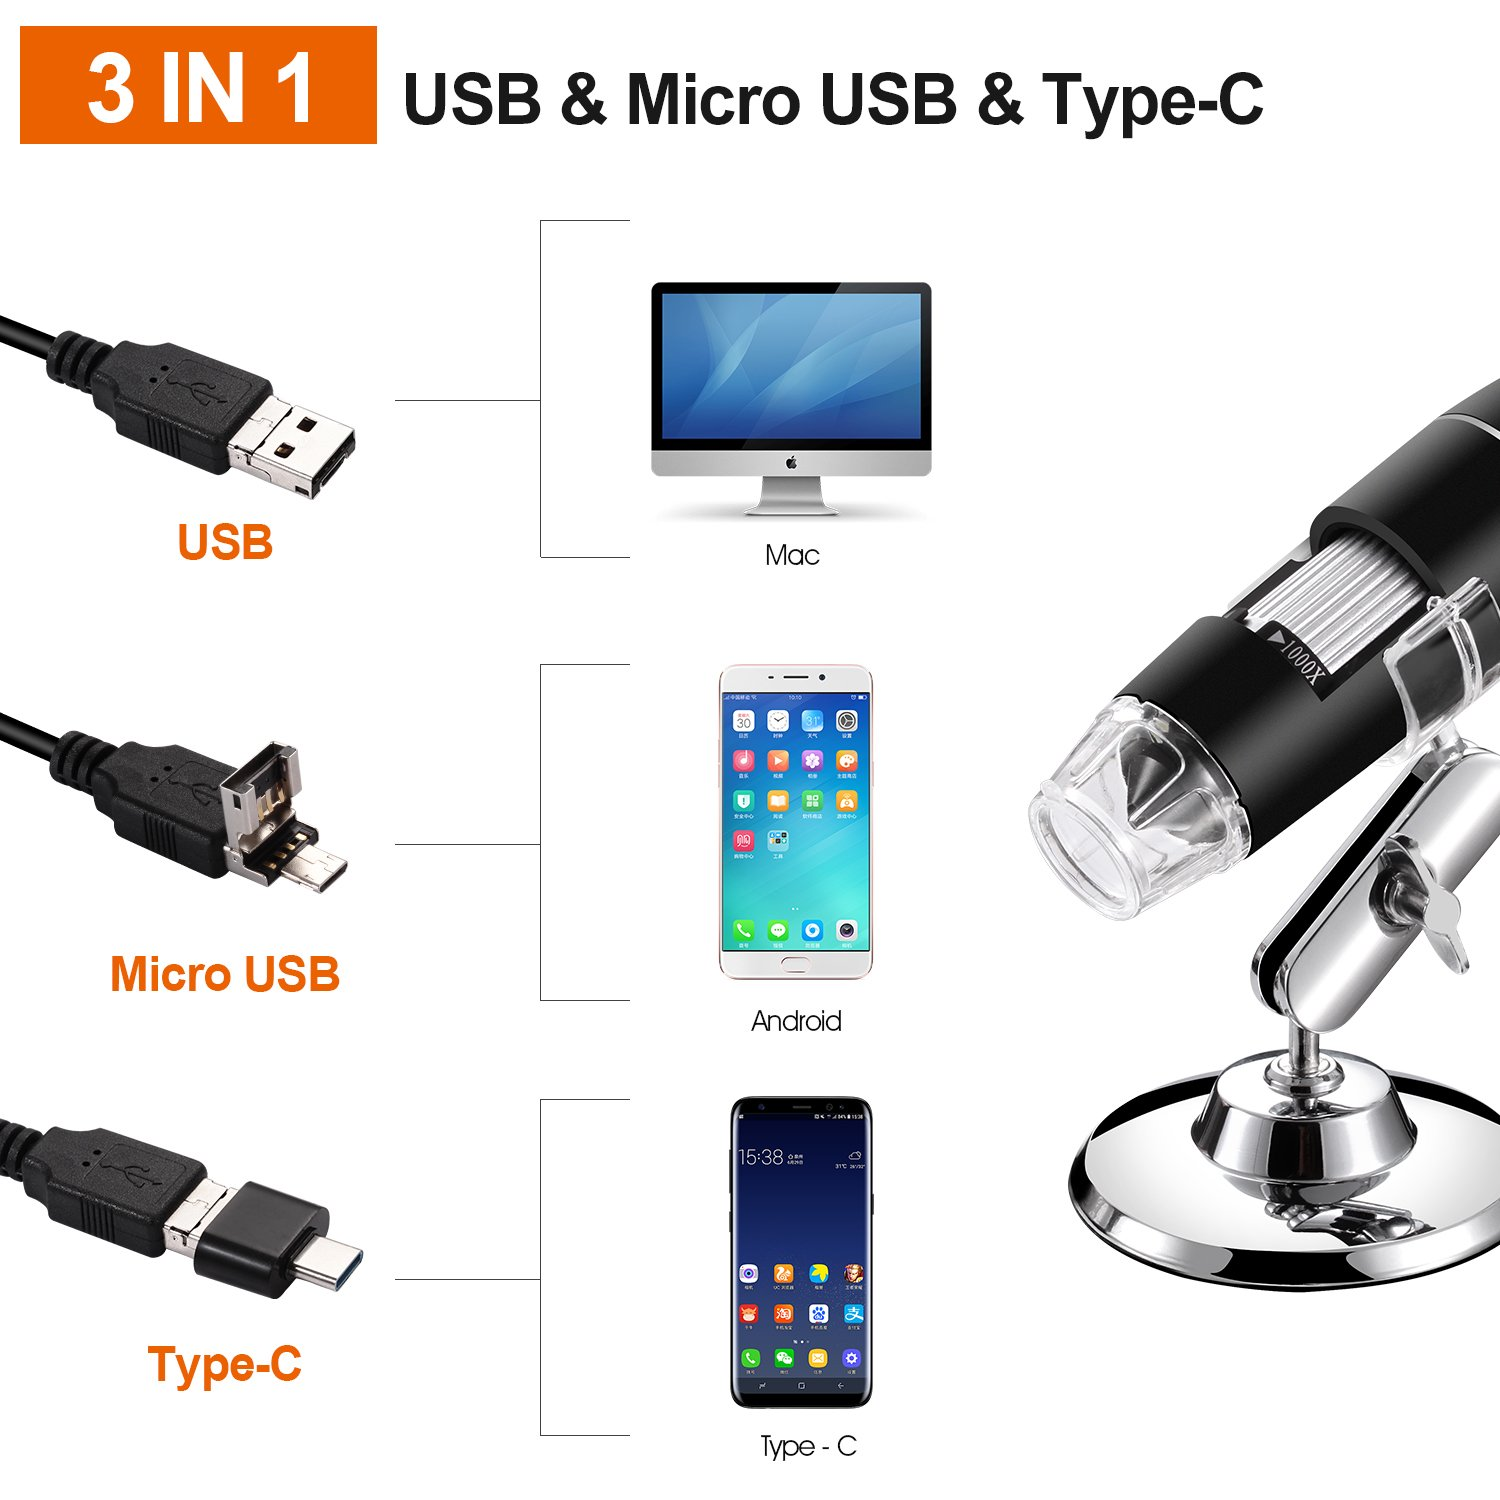 USB Digital Microscope, Bysameyee Handheld 40X-1000X Magnification Endoscope, 8 LED Mini Video Camera for Windows 7/8/10 Mac Linux Android (with OTG) by Bysameyee (Image #1)